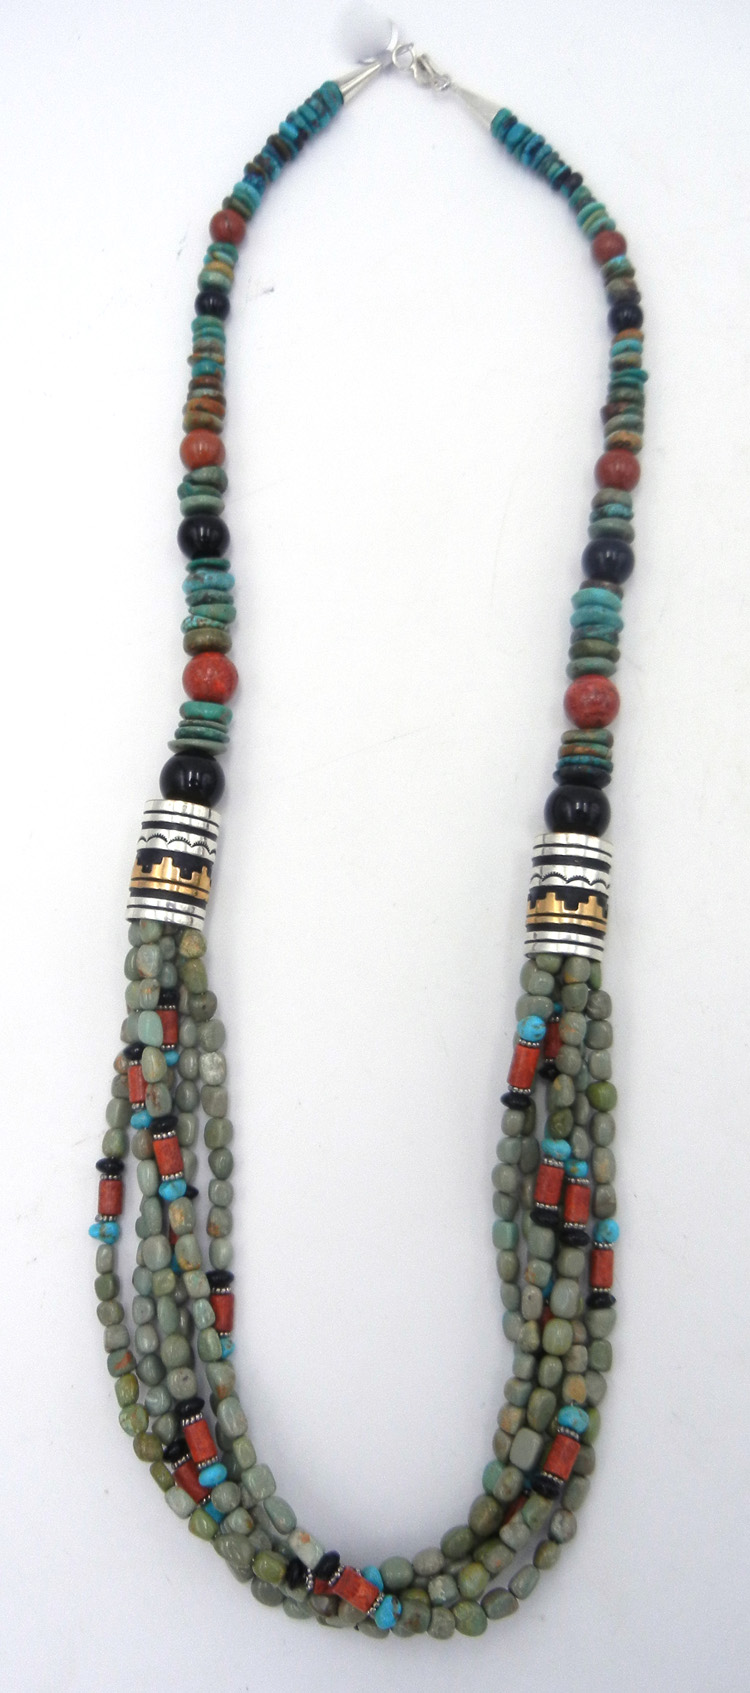 Navajo green turquoise, multi-bead, sterling silver and gold fill overlay necklace by Rosita Singer